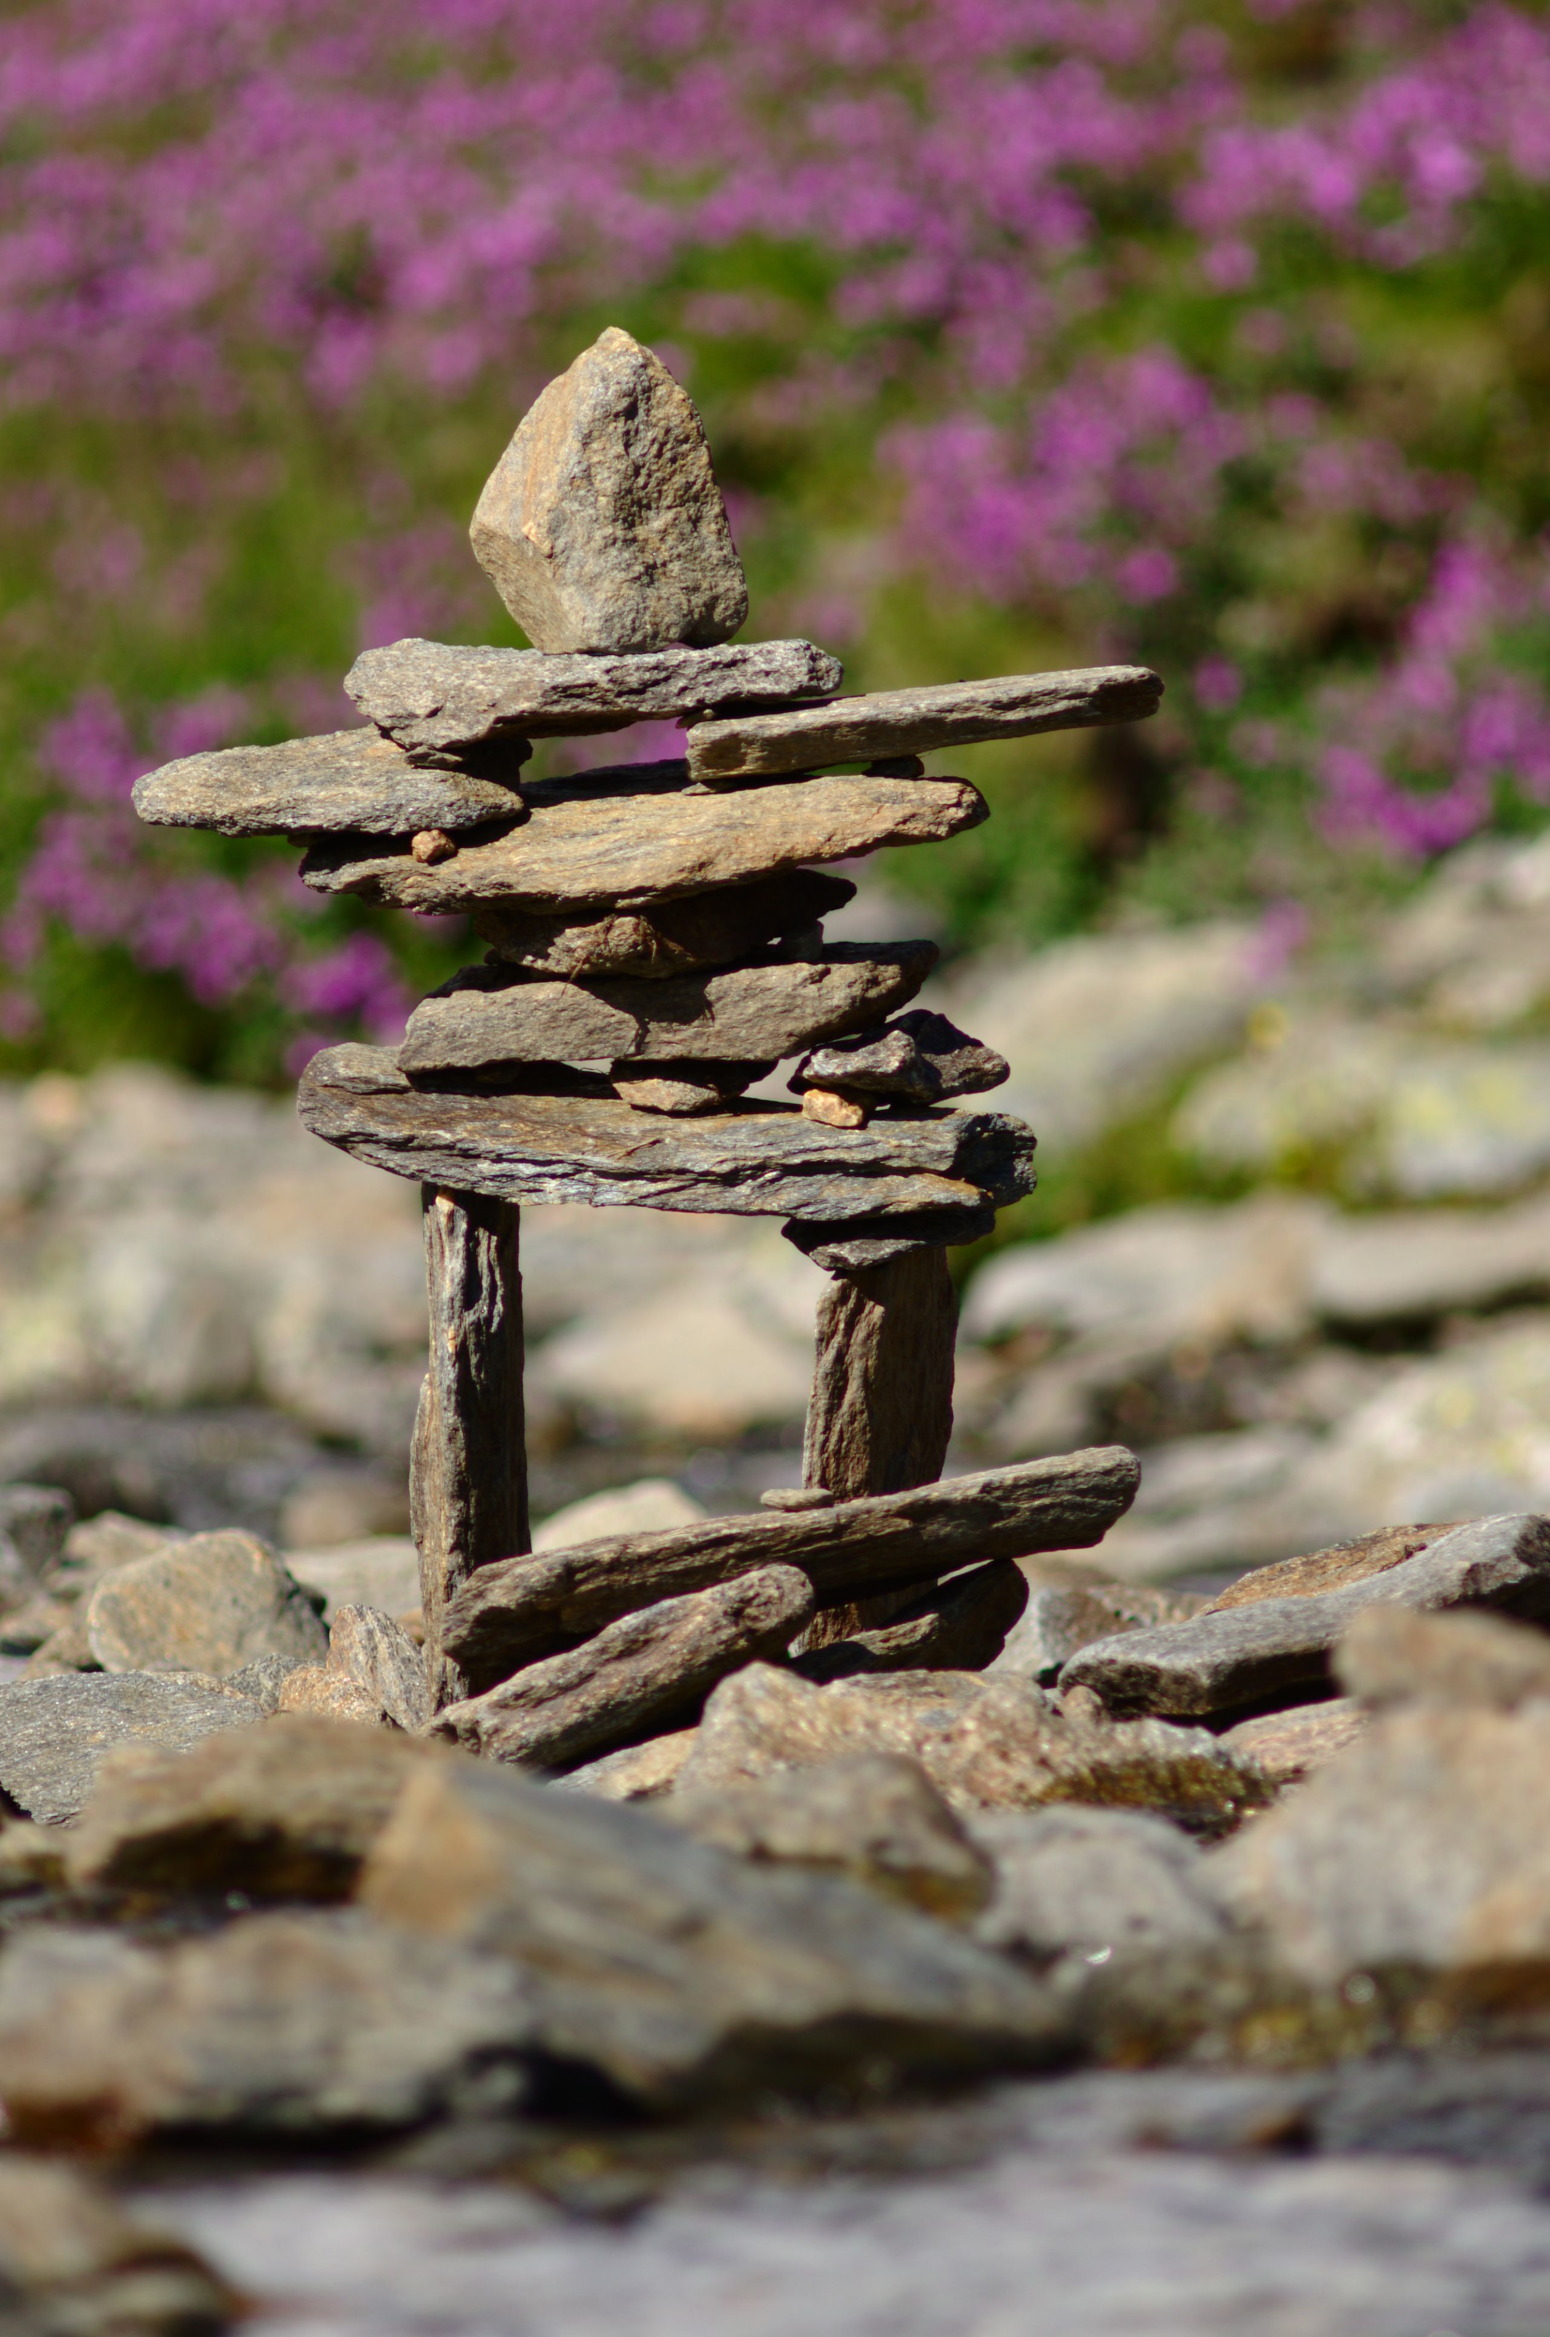 A nunatak built of rocks in a streambed.